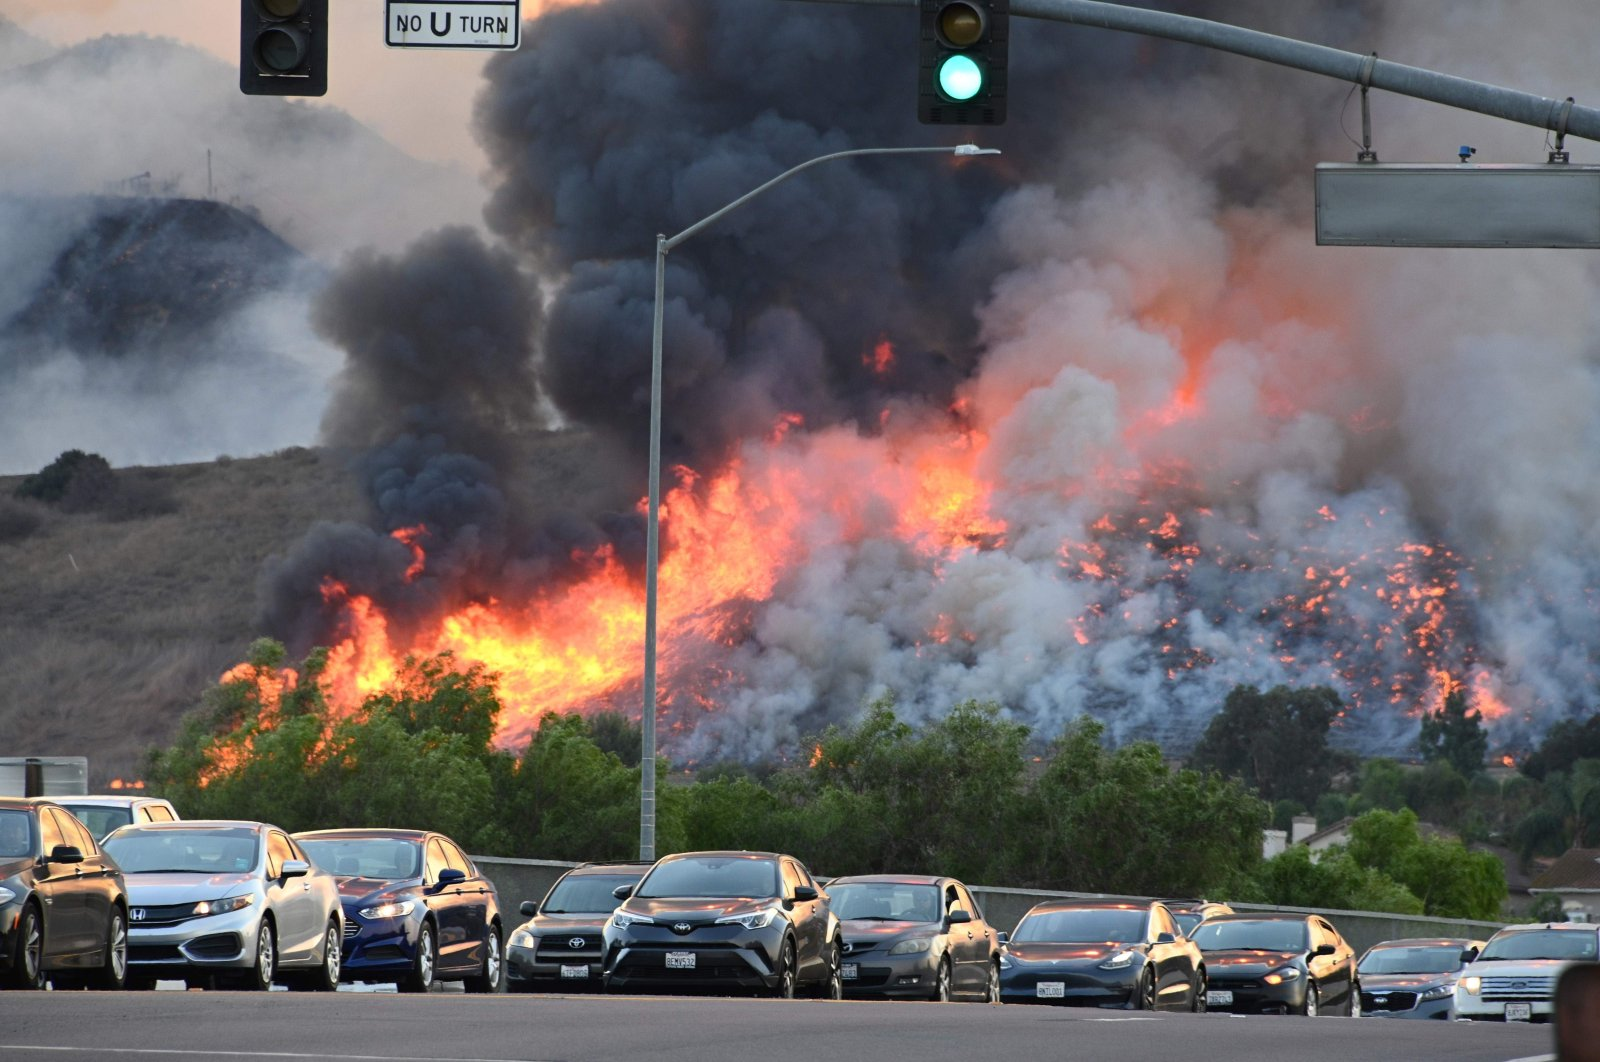 Flames are seen in the background as vehicles drive on a highway overpass at the Blue Ridge Fire in Chino, California, Oct. 27, 2020. (AFP Photo)